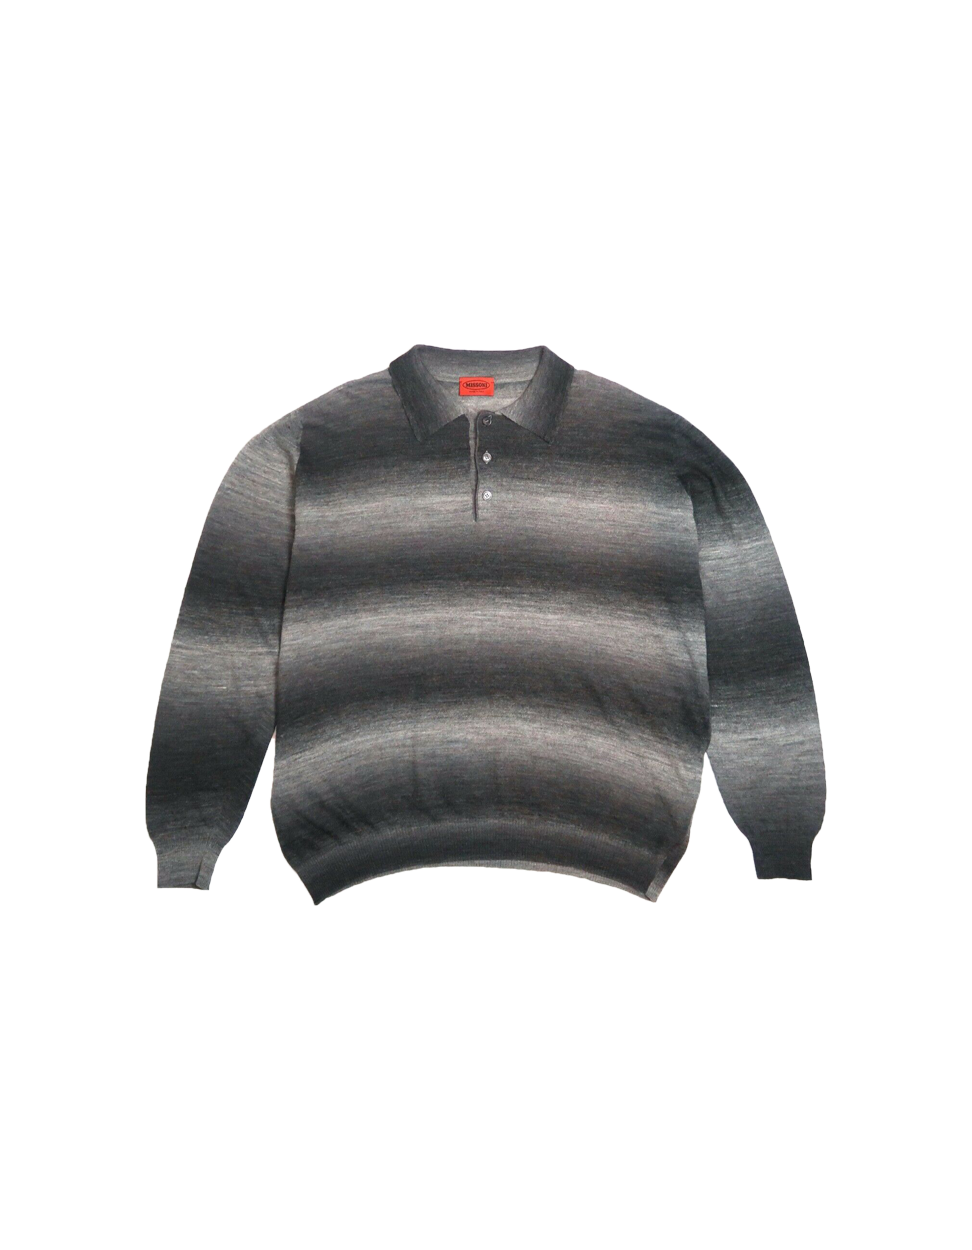 MISSONI Greyscale Gradient Knit Long Sleeve Polo